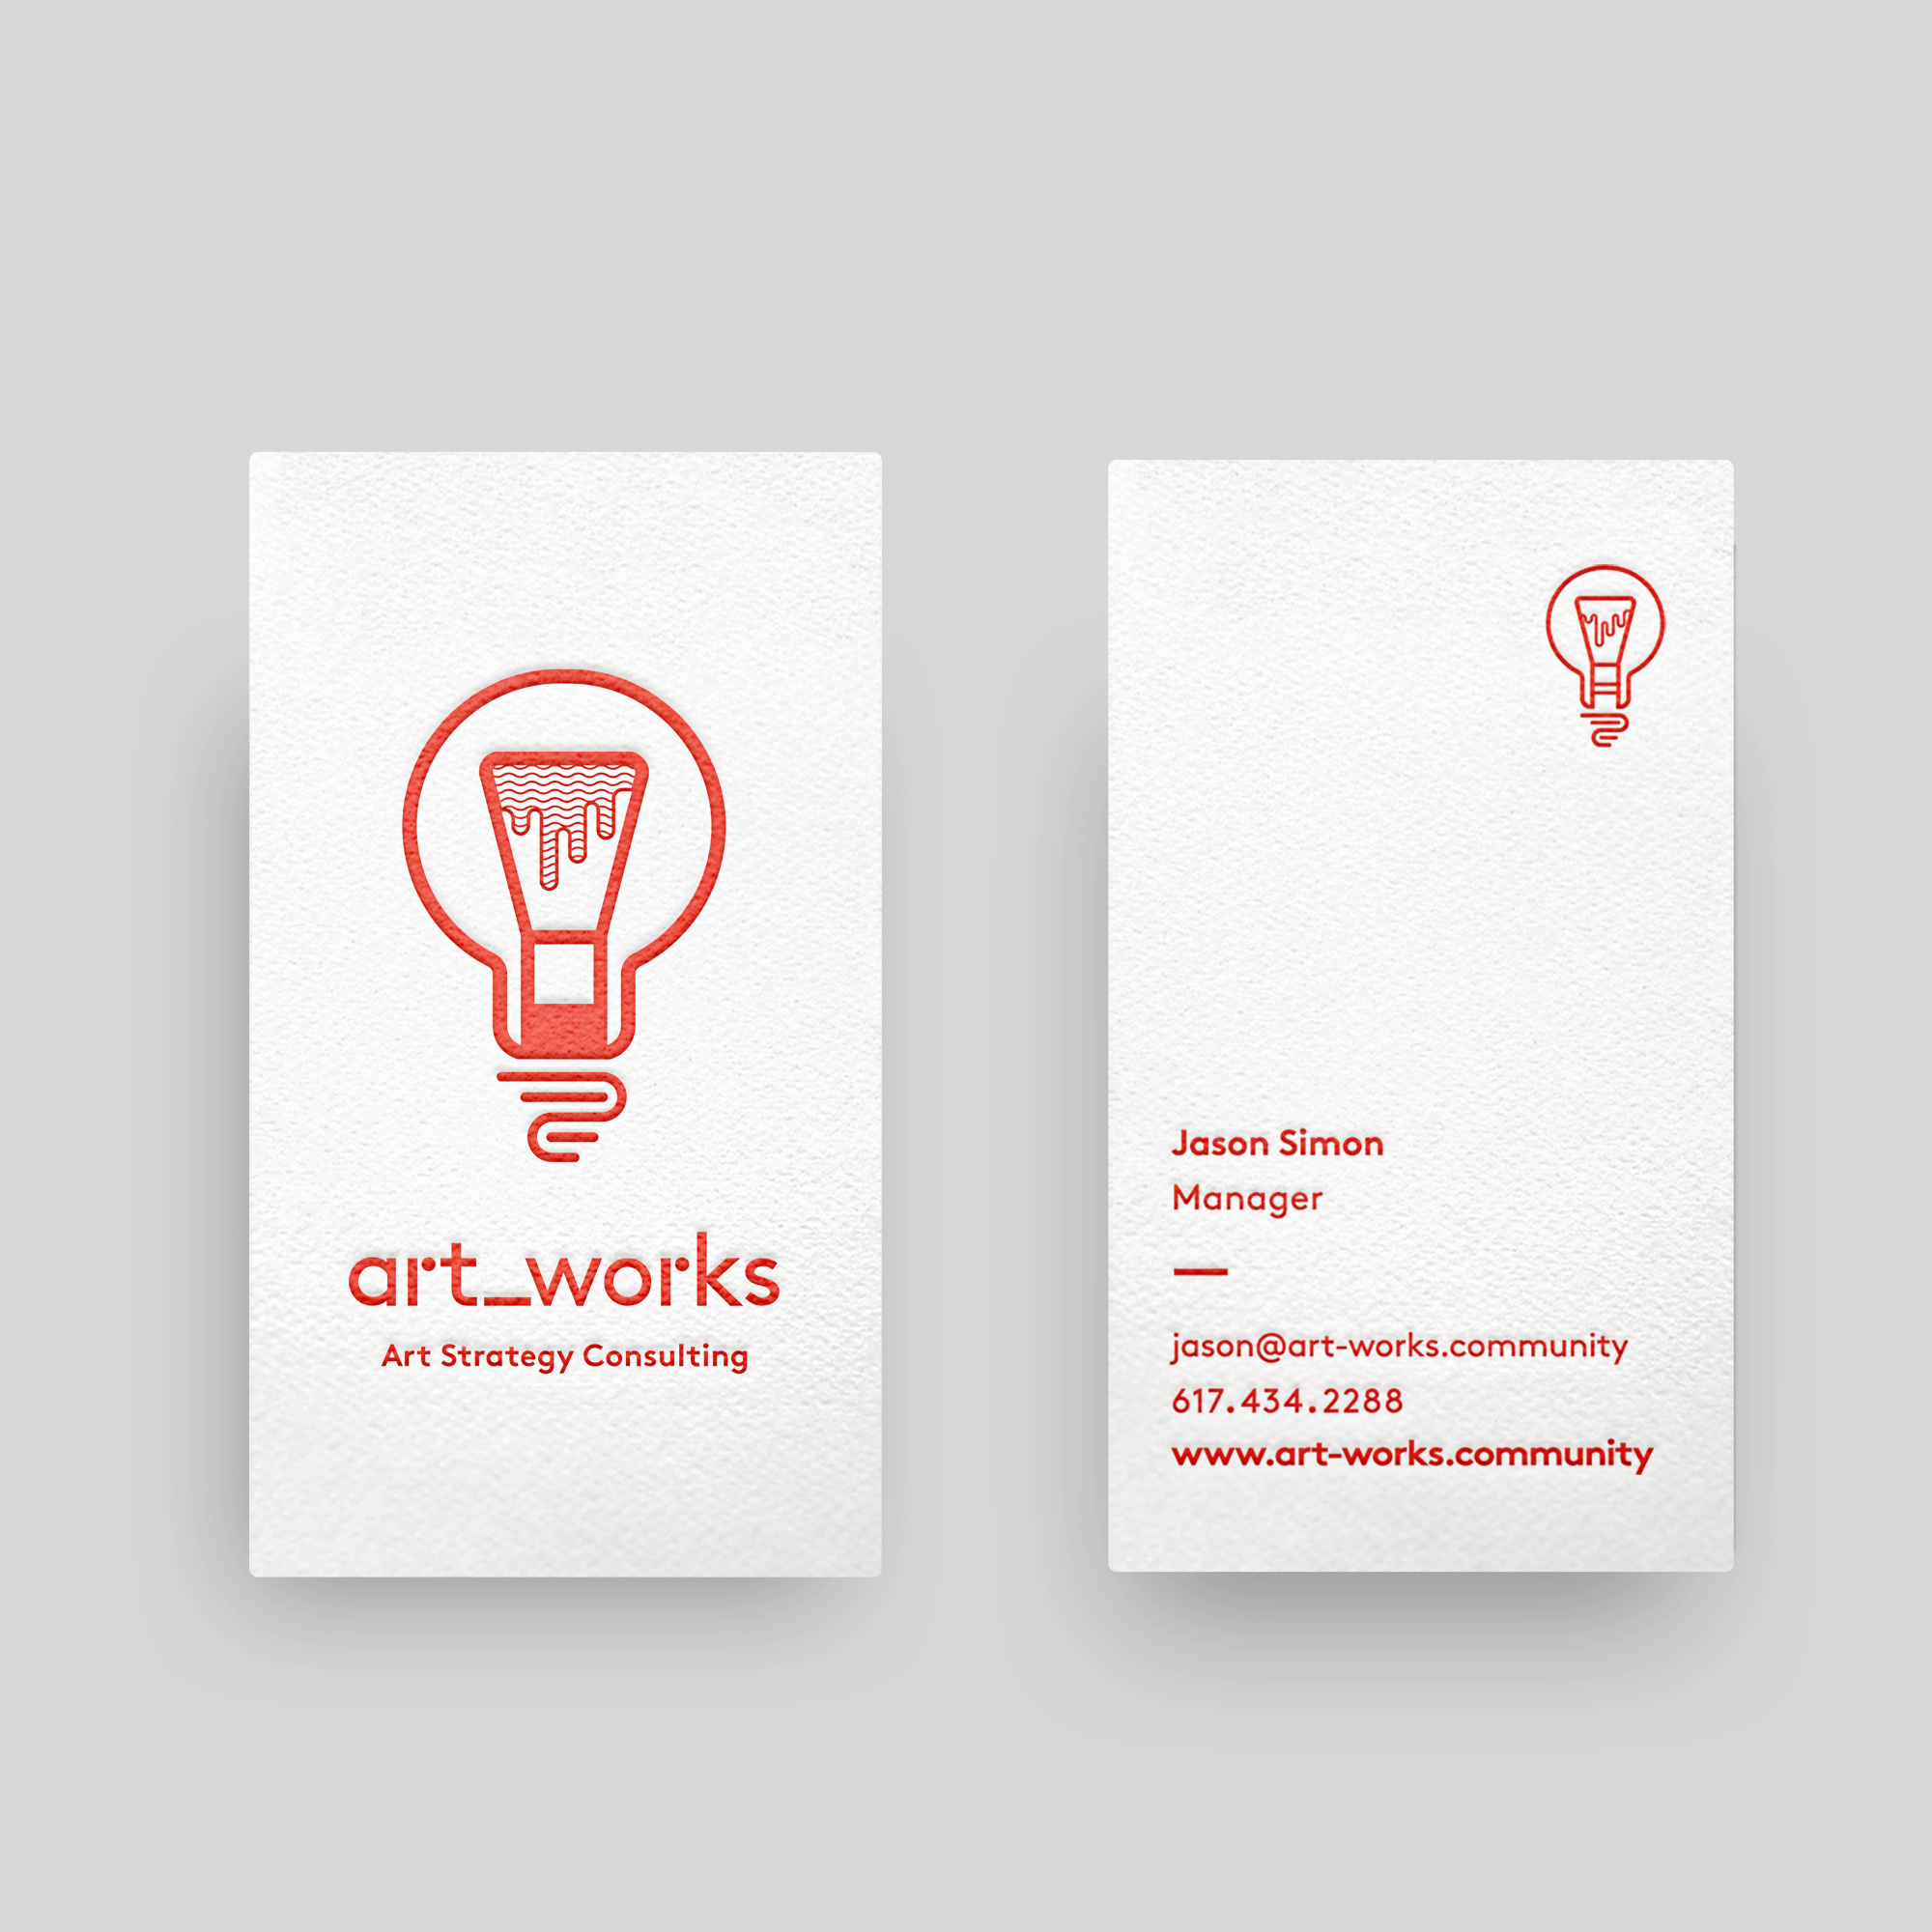 art_works_logo_reduce.jpg